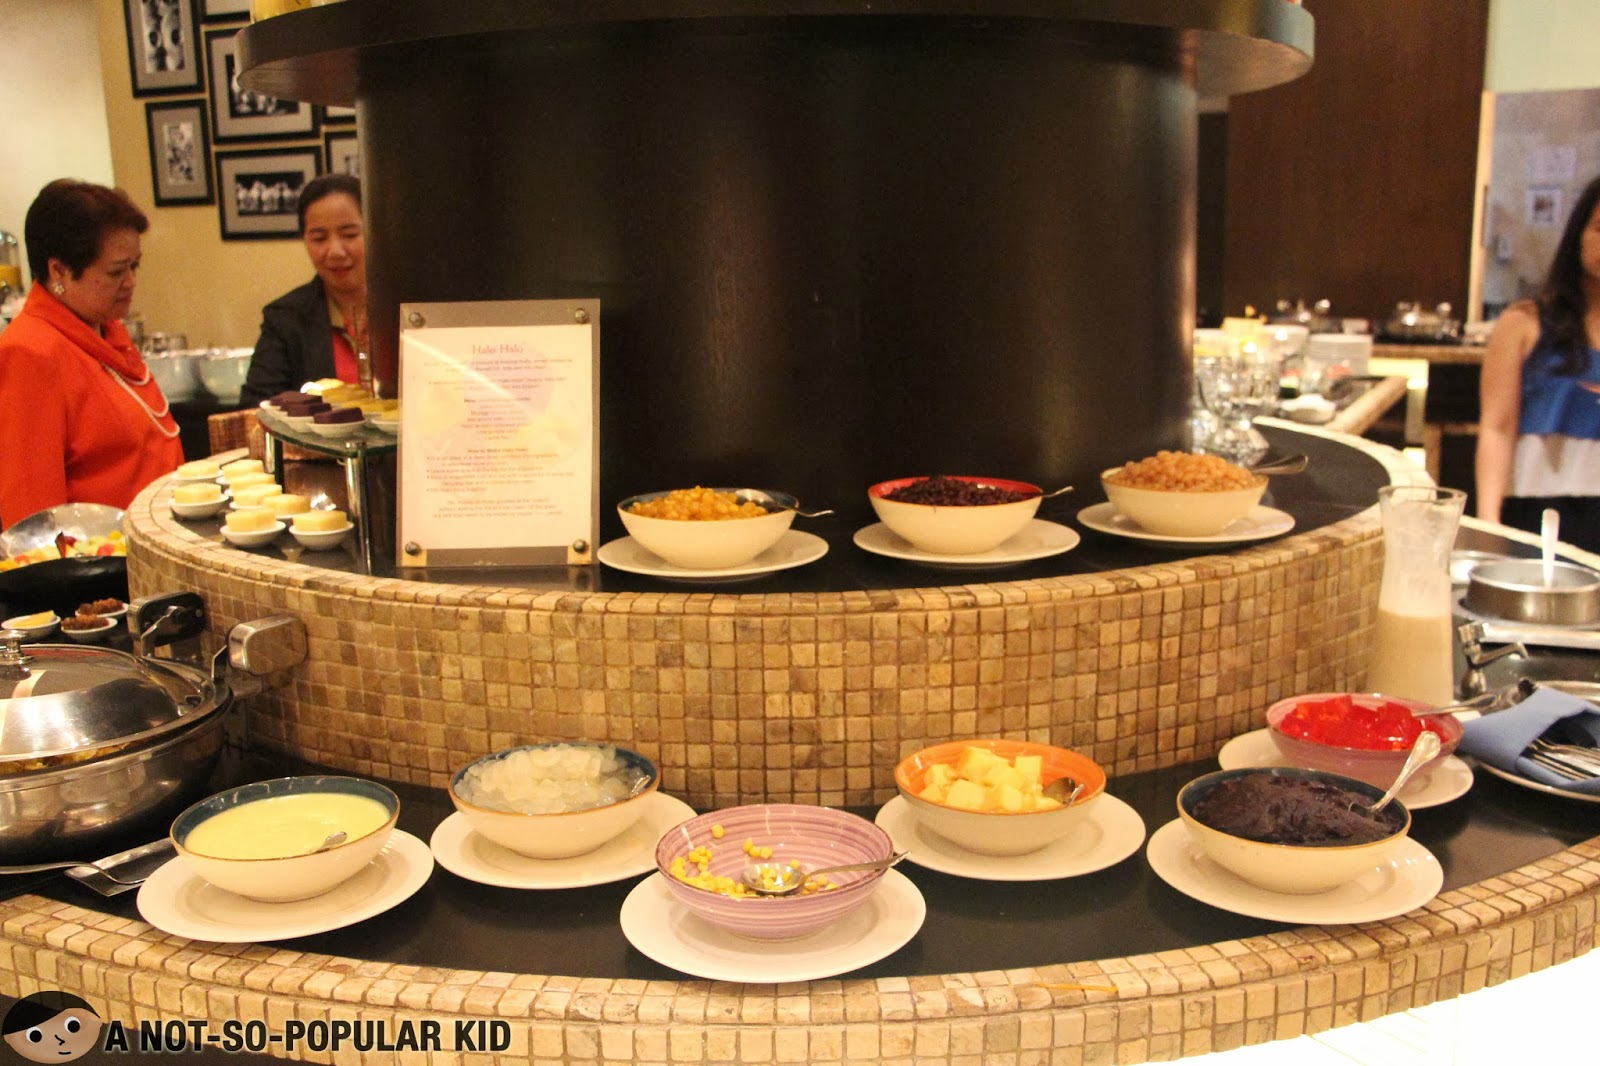 The Make-It-Your-Own Halo-Halo in Dusit Thani's Basix Restaurant